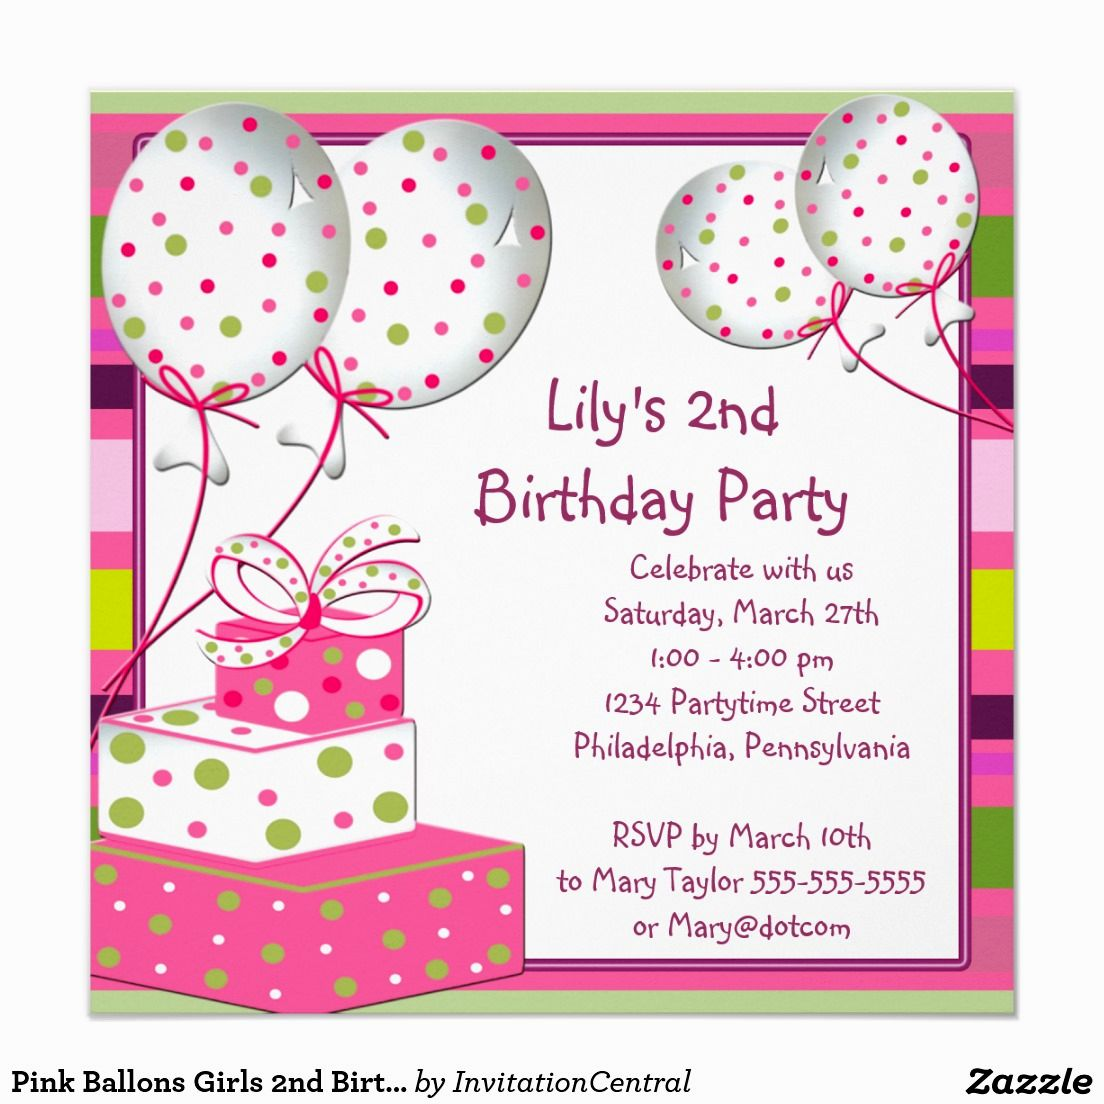 10th birthday invitation quotes ; top-birthday-invitation-quotes-pattern-stylish-birthday-invitation-quotes-portrait